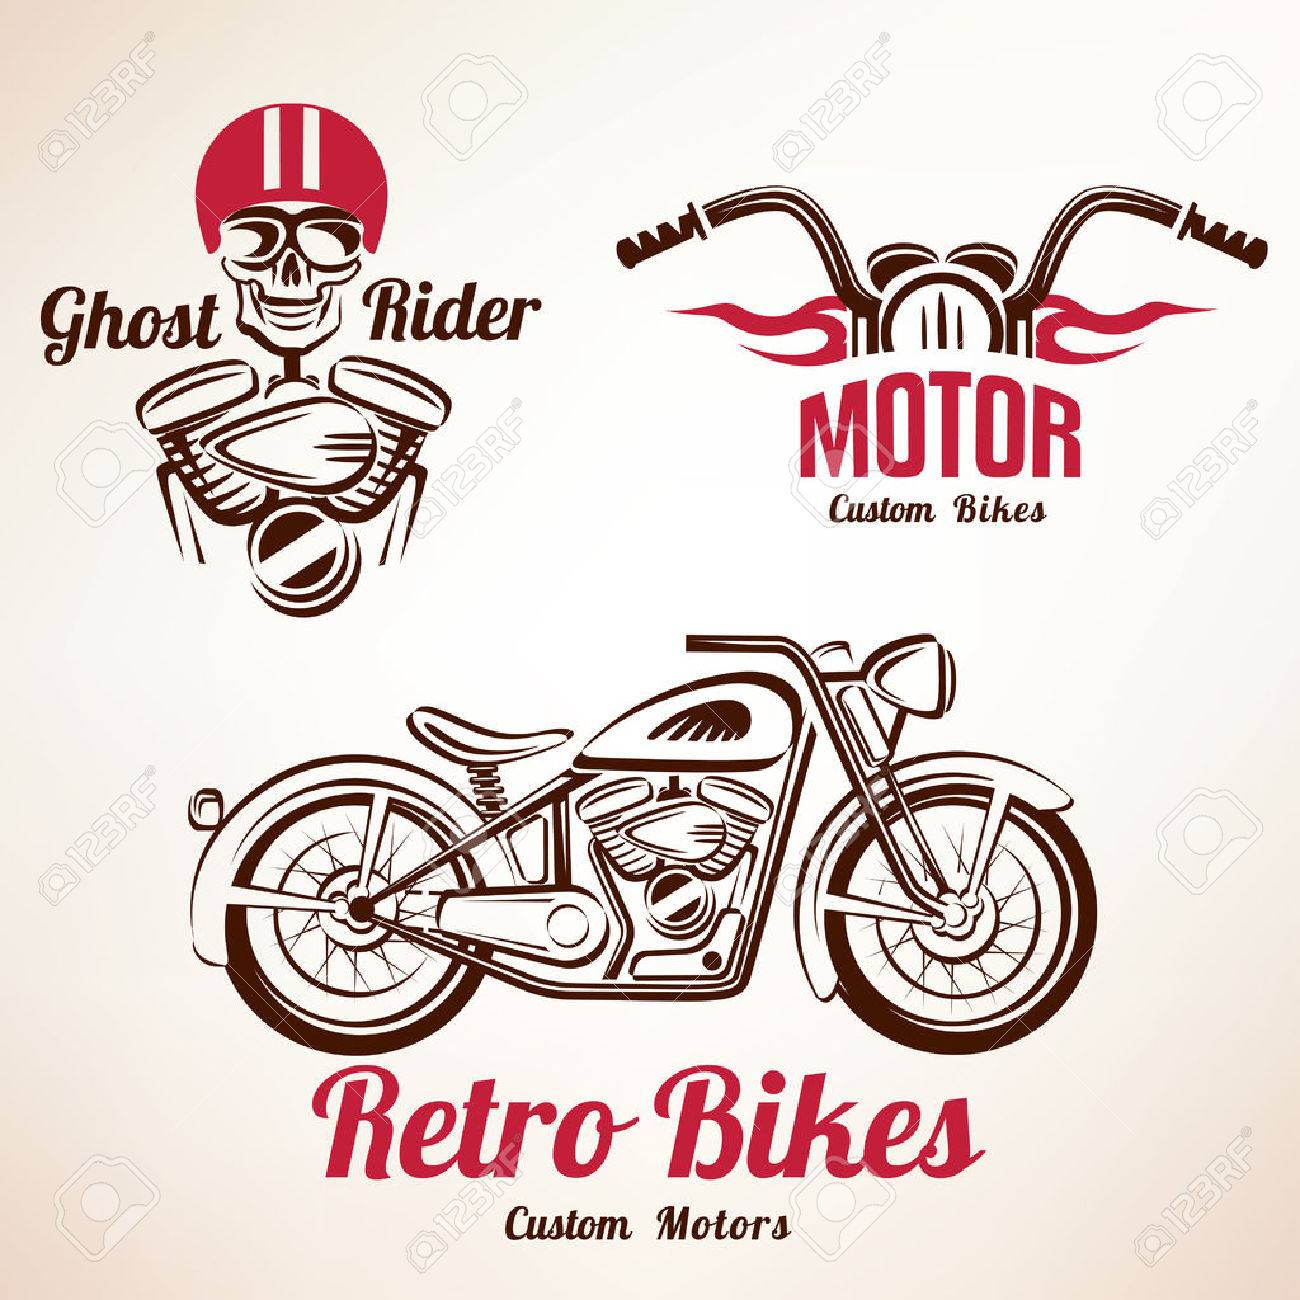 motorbikes emblems and labels set, retro motorcycle - 50926411